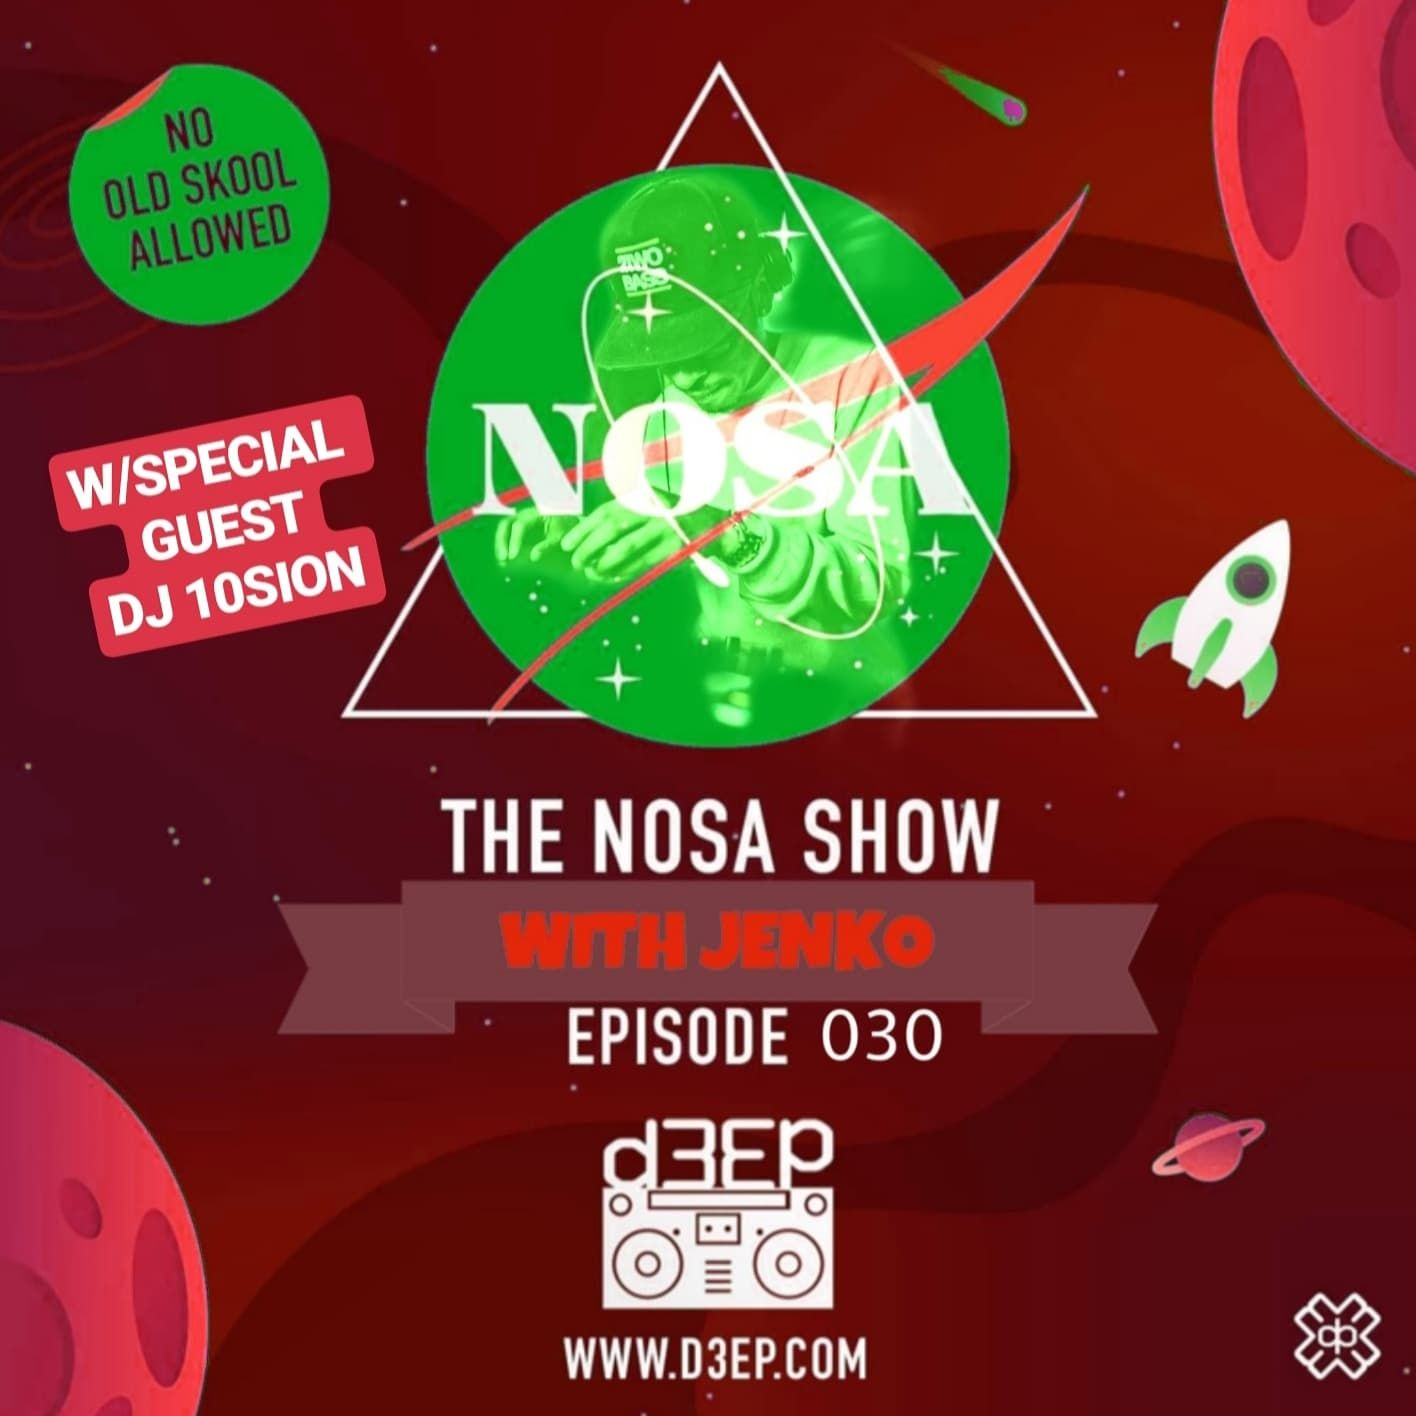 The Nosa Show With Jenko Episode 030 W/SPECIAL GUEST DJ 10SION (22/05/09)